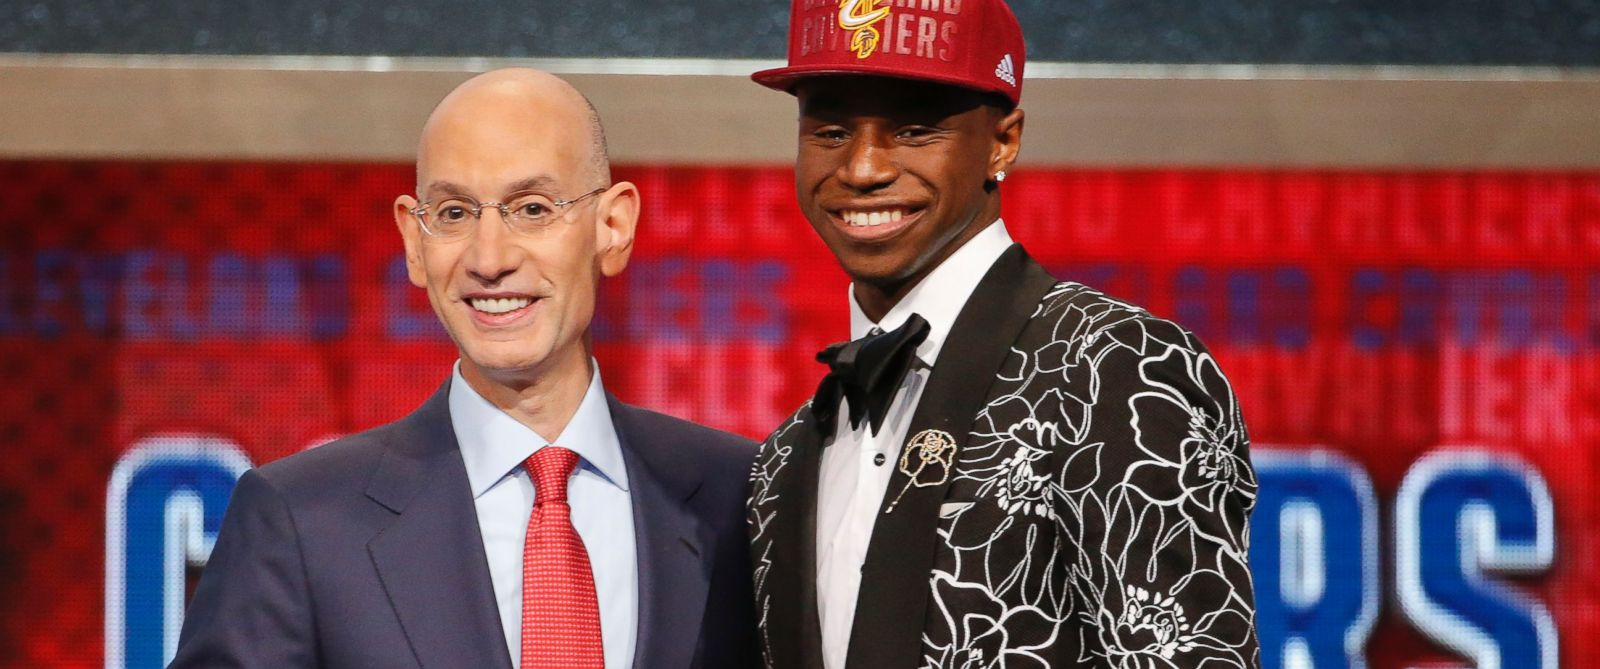 PHOTO: NBA Commissioner Adam Silver, left, congratulates Andrew Wiggins of Kansas who was selected by the Cleveland Cavaliers as the number one pick in the 2014 NBA draft, June 26, 2014, in New York.